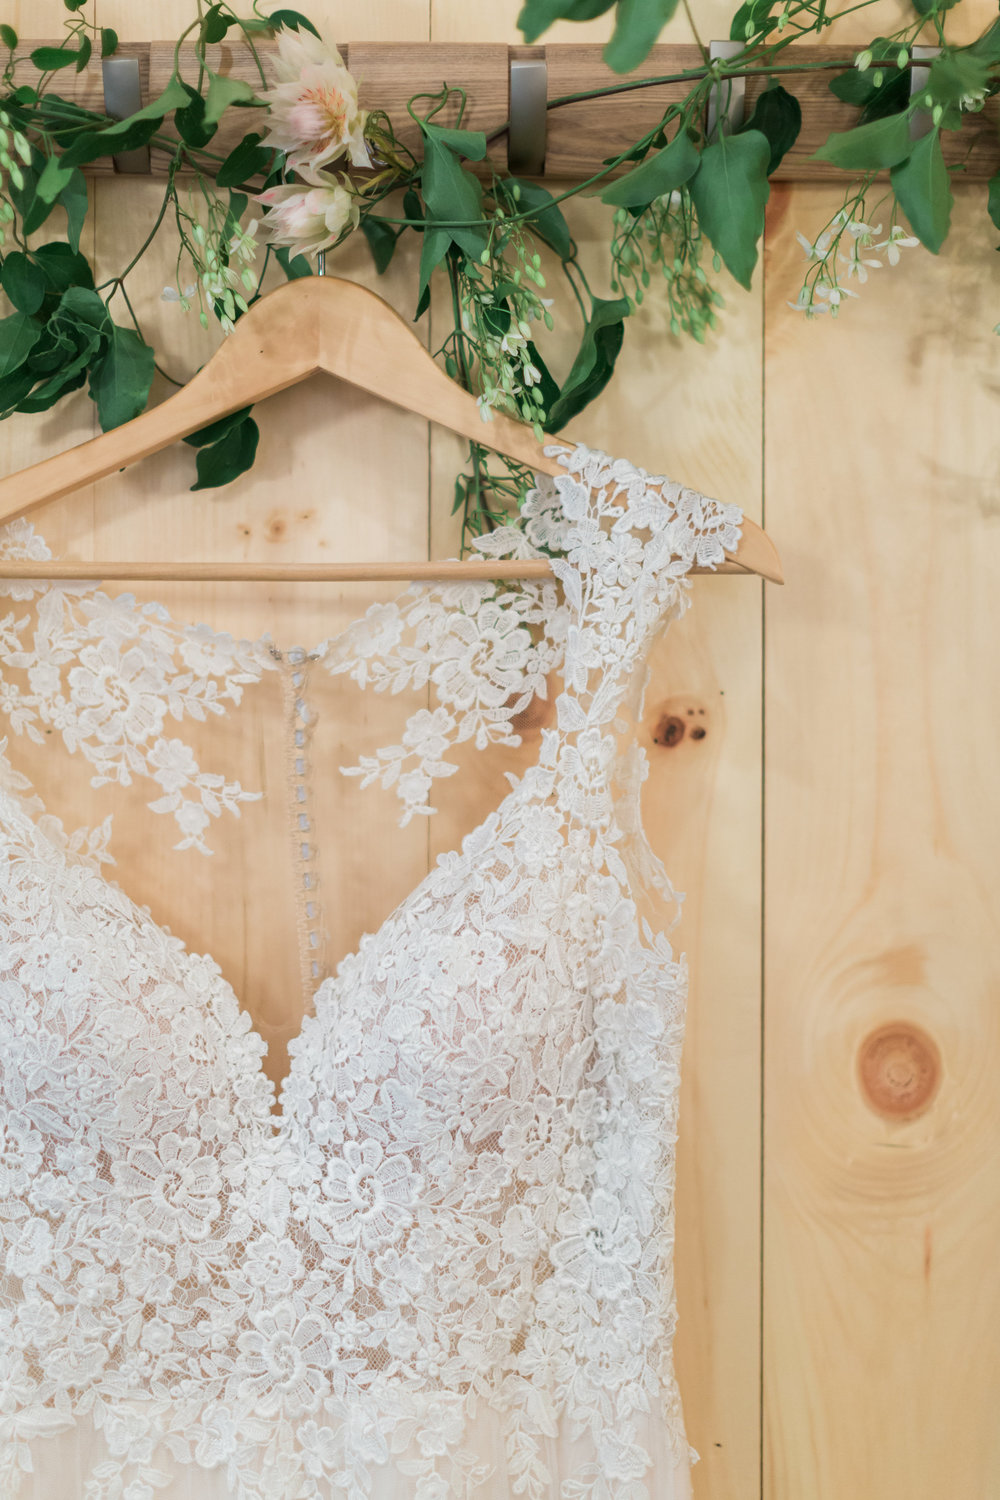 white-lace-wedding-dress-photo-bride-dressing-room-country-lane-lodge-adel-iowa-wedding-venue-iowa-wedding-planned-by-mostly-becky-weddings